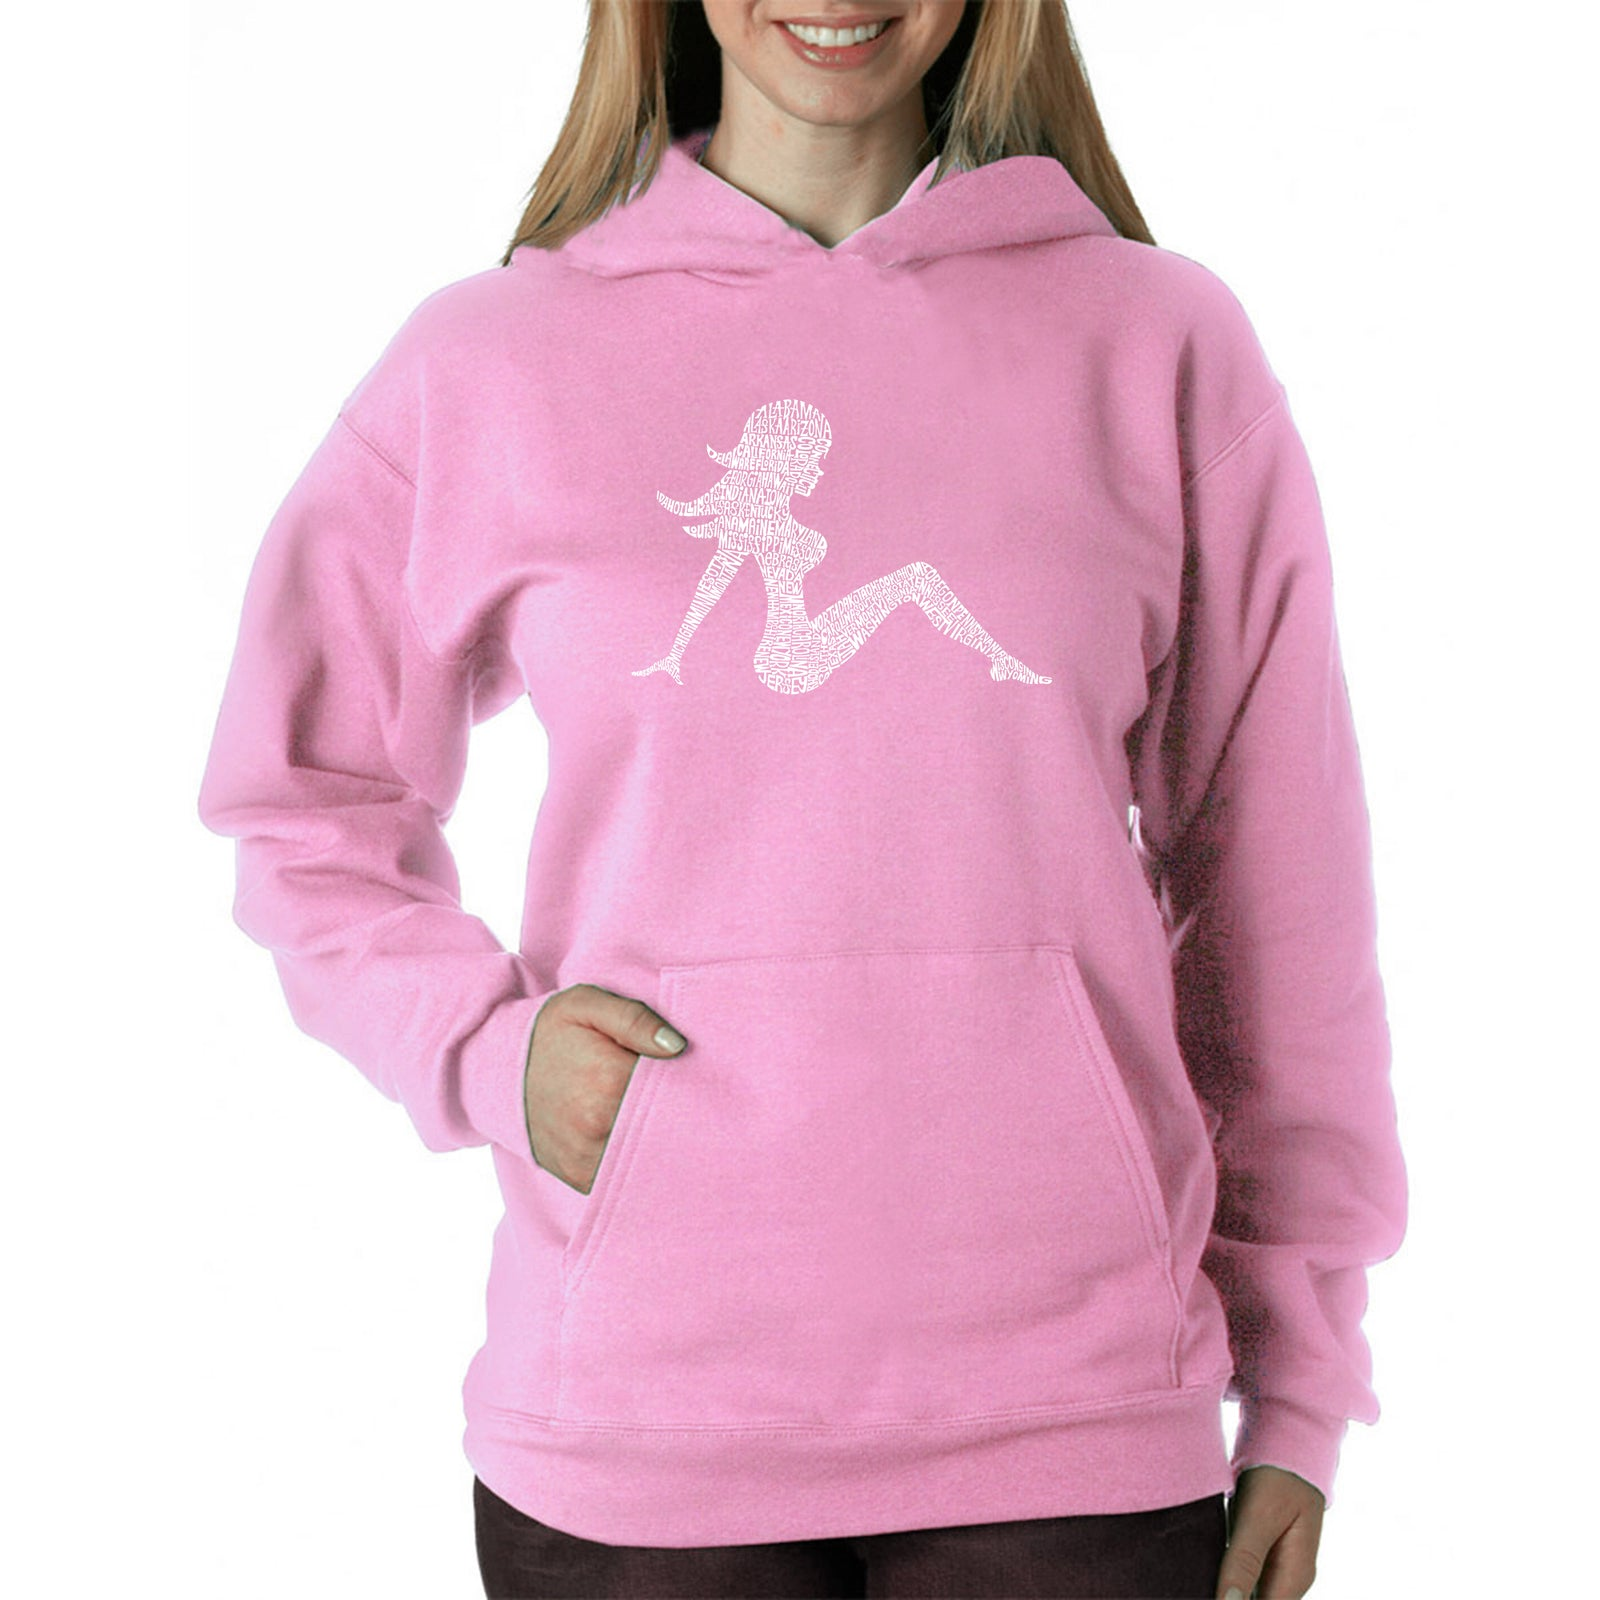 Women's Hooded Sweatshirt -MUDFLAP GIRL